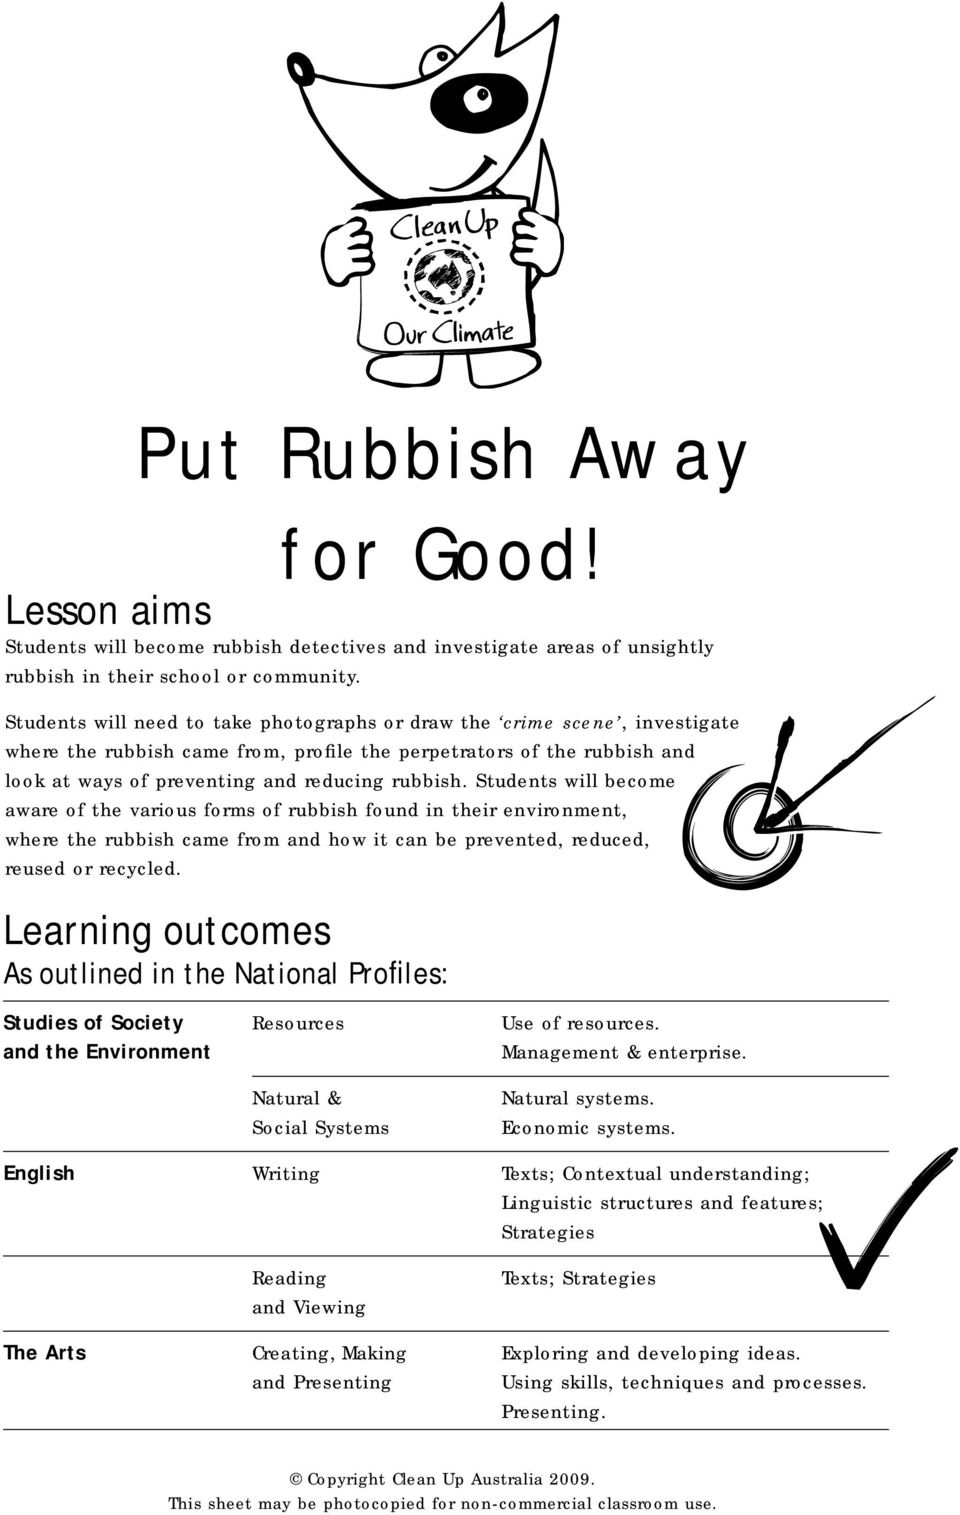 Students will become aware of the various forms of rubbish found in their environment, where the rubbish came from and how it can be prevented, reduced, reused or recycled.